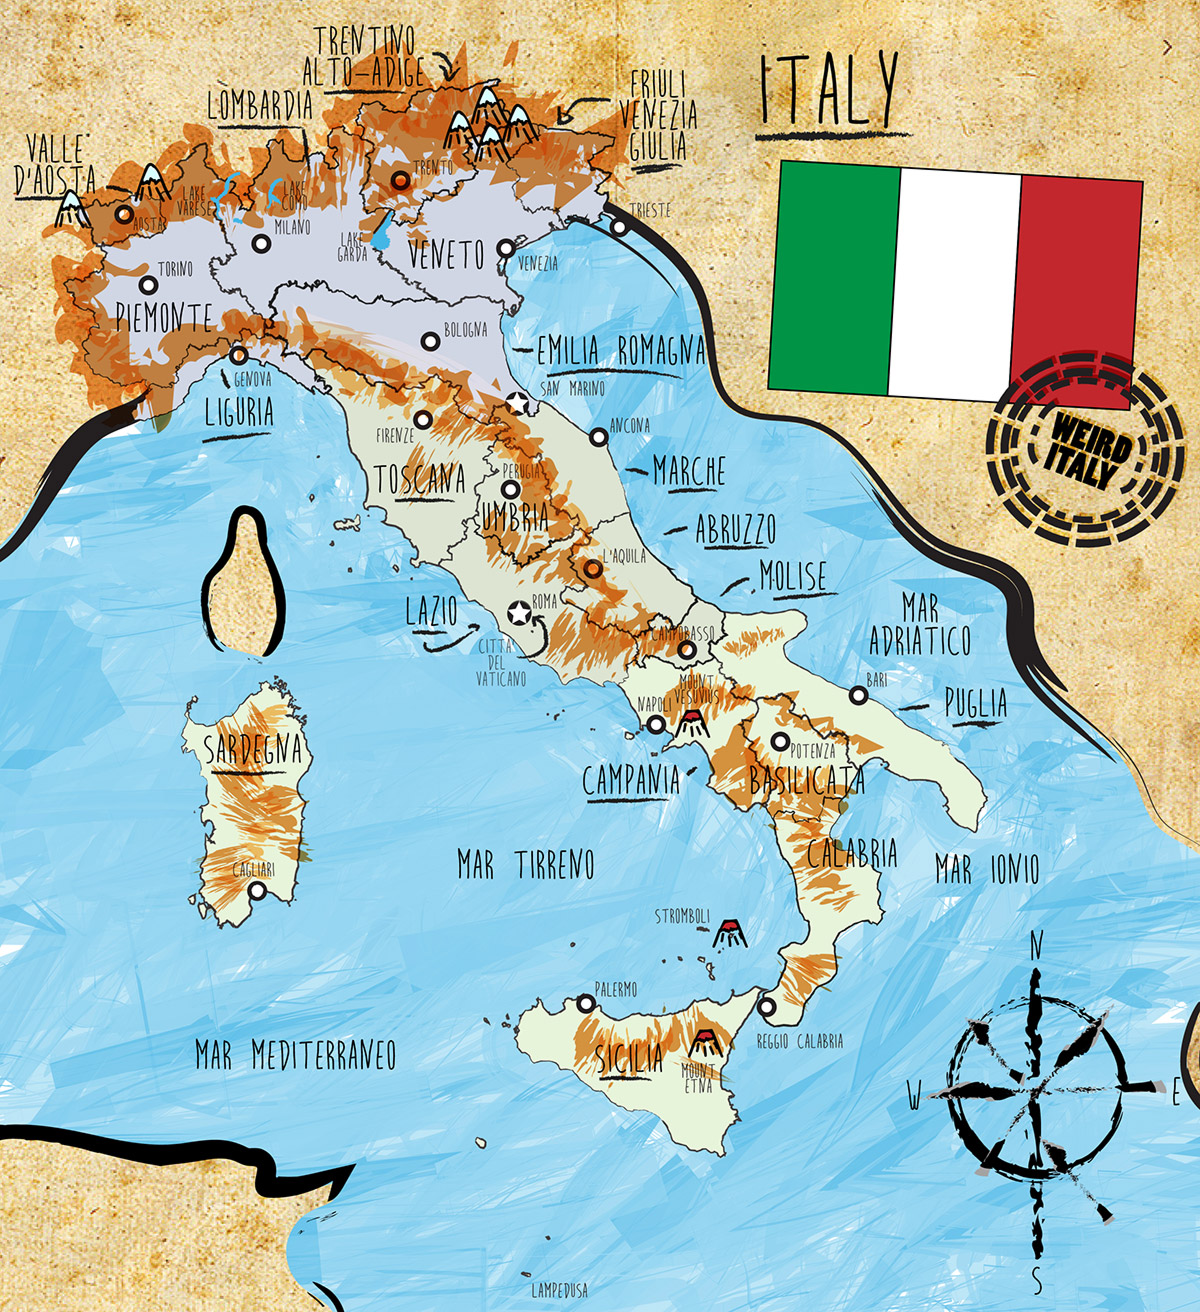 Weird Italy weird-italy-map Italy, Country Map and Statistics Essential Information Magazine  Regions of Italy Italy statistics Italy map Geography of Italy Famous Italian writers famous italian food Famous Italian artists Economy of Italy Climate of Italy